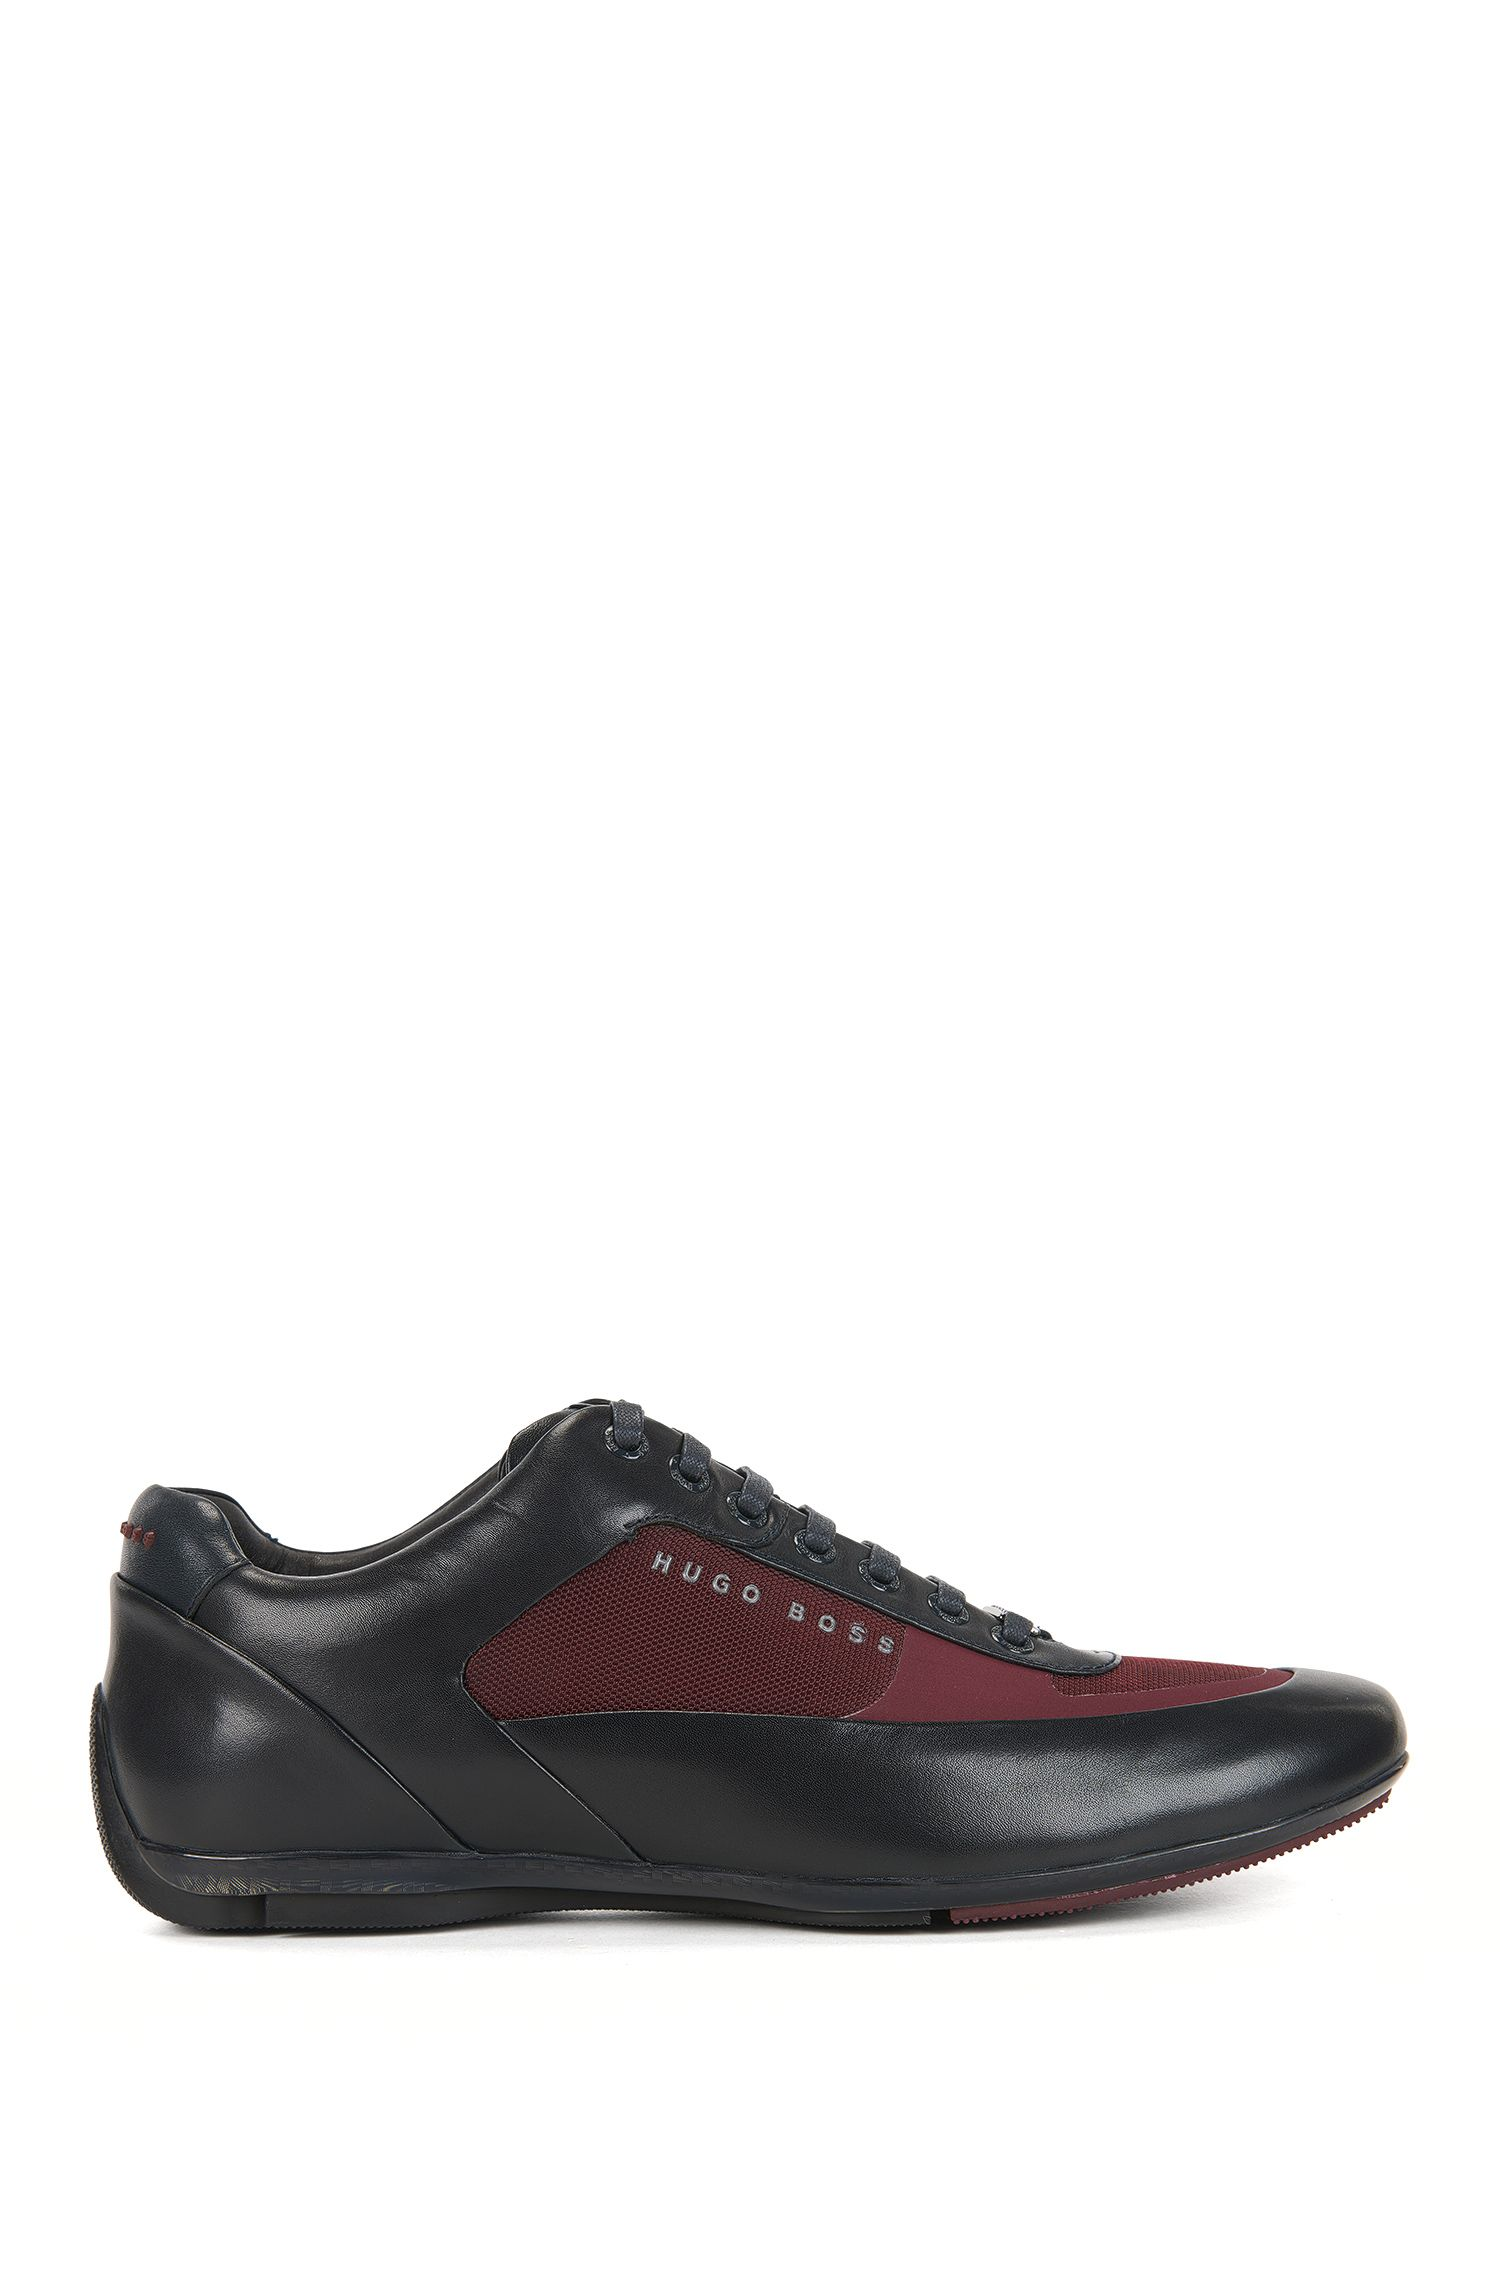 Leather Sneaker   HBRacing Lowp Itny